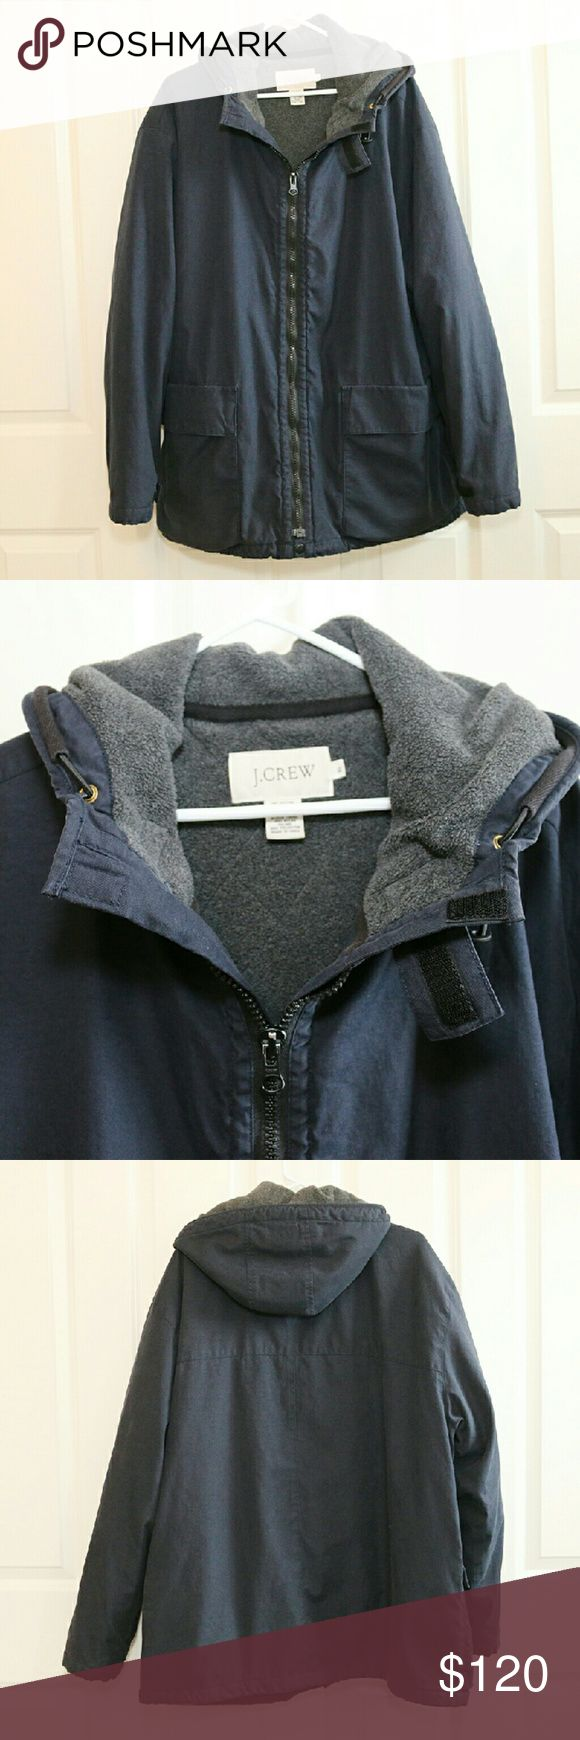 J.Crew Men's Parka Jacket Navy Blue XL J.Crew Men's Parka Jacket.  Size XL.  Navy blue outside, charcoal grey inside.  Hooded.  Excellent used condition.  No rips, stains.  Inside pen pocket.  Two large pockets in front.  Fleece lined.  Only thing that looks to be missing is the cinch cords at the bottom of jacket.  About 27 inches armpit to armpit.  About 32 inches shoulder to hem.  Retails around $350.00.  ** Only reasonable offers will be considered. J. Crew Jackets & Coats